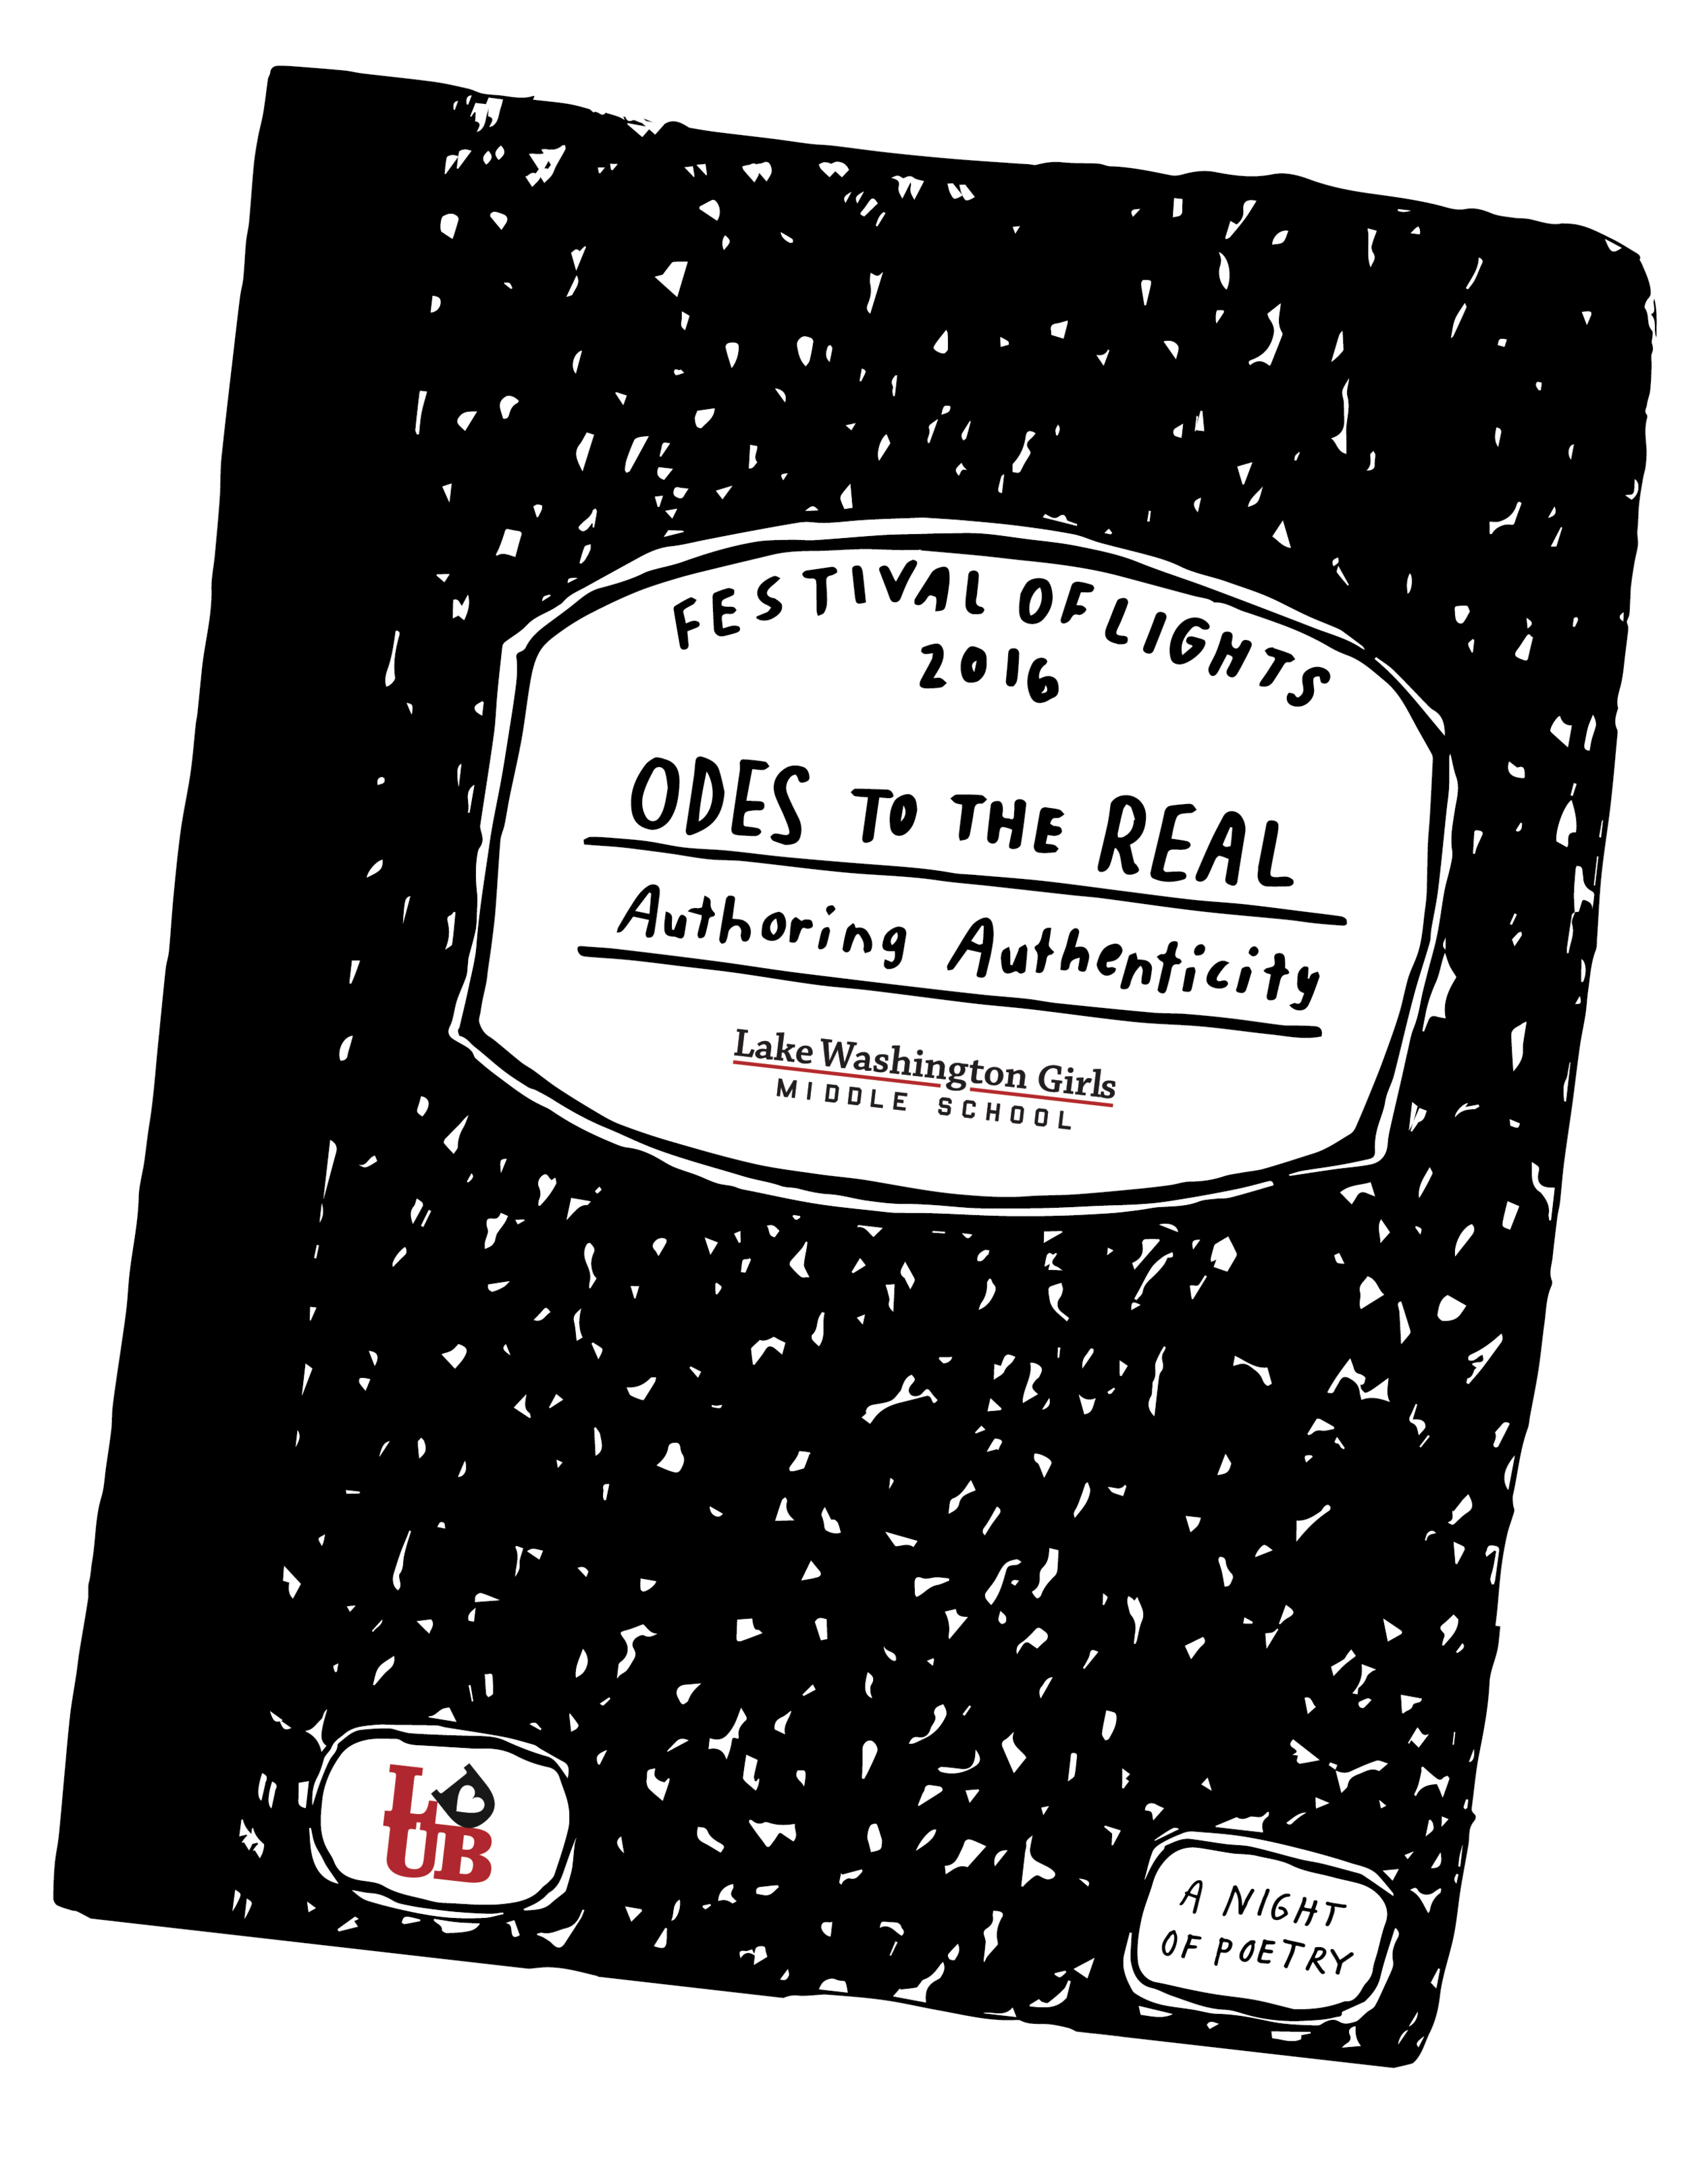 Lake Washington Girls Middle School Festival of Lights/Poetry Night: Odes to the Real: Authoring Authenticity.